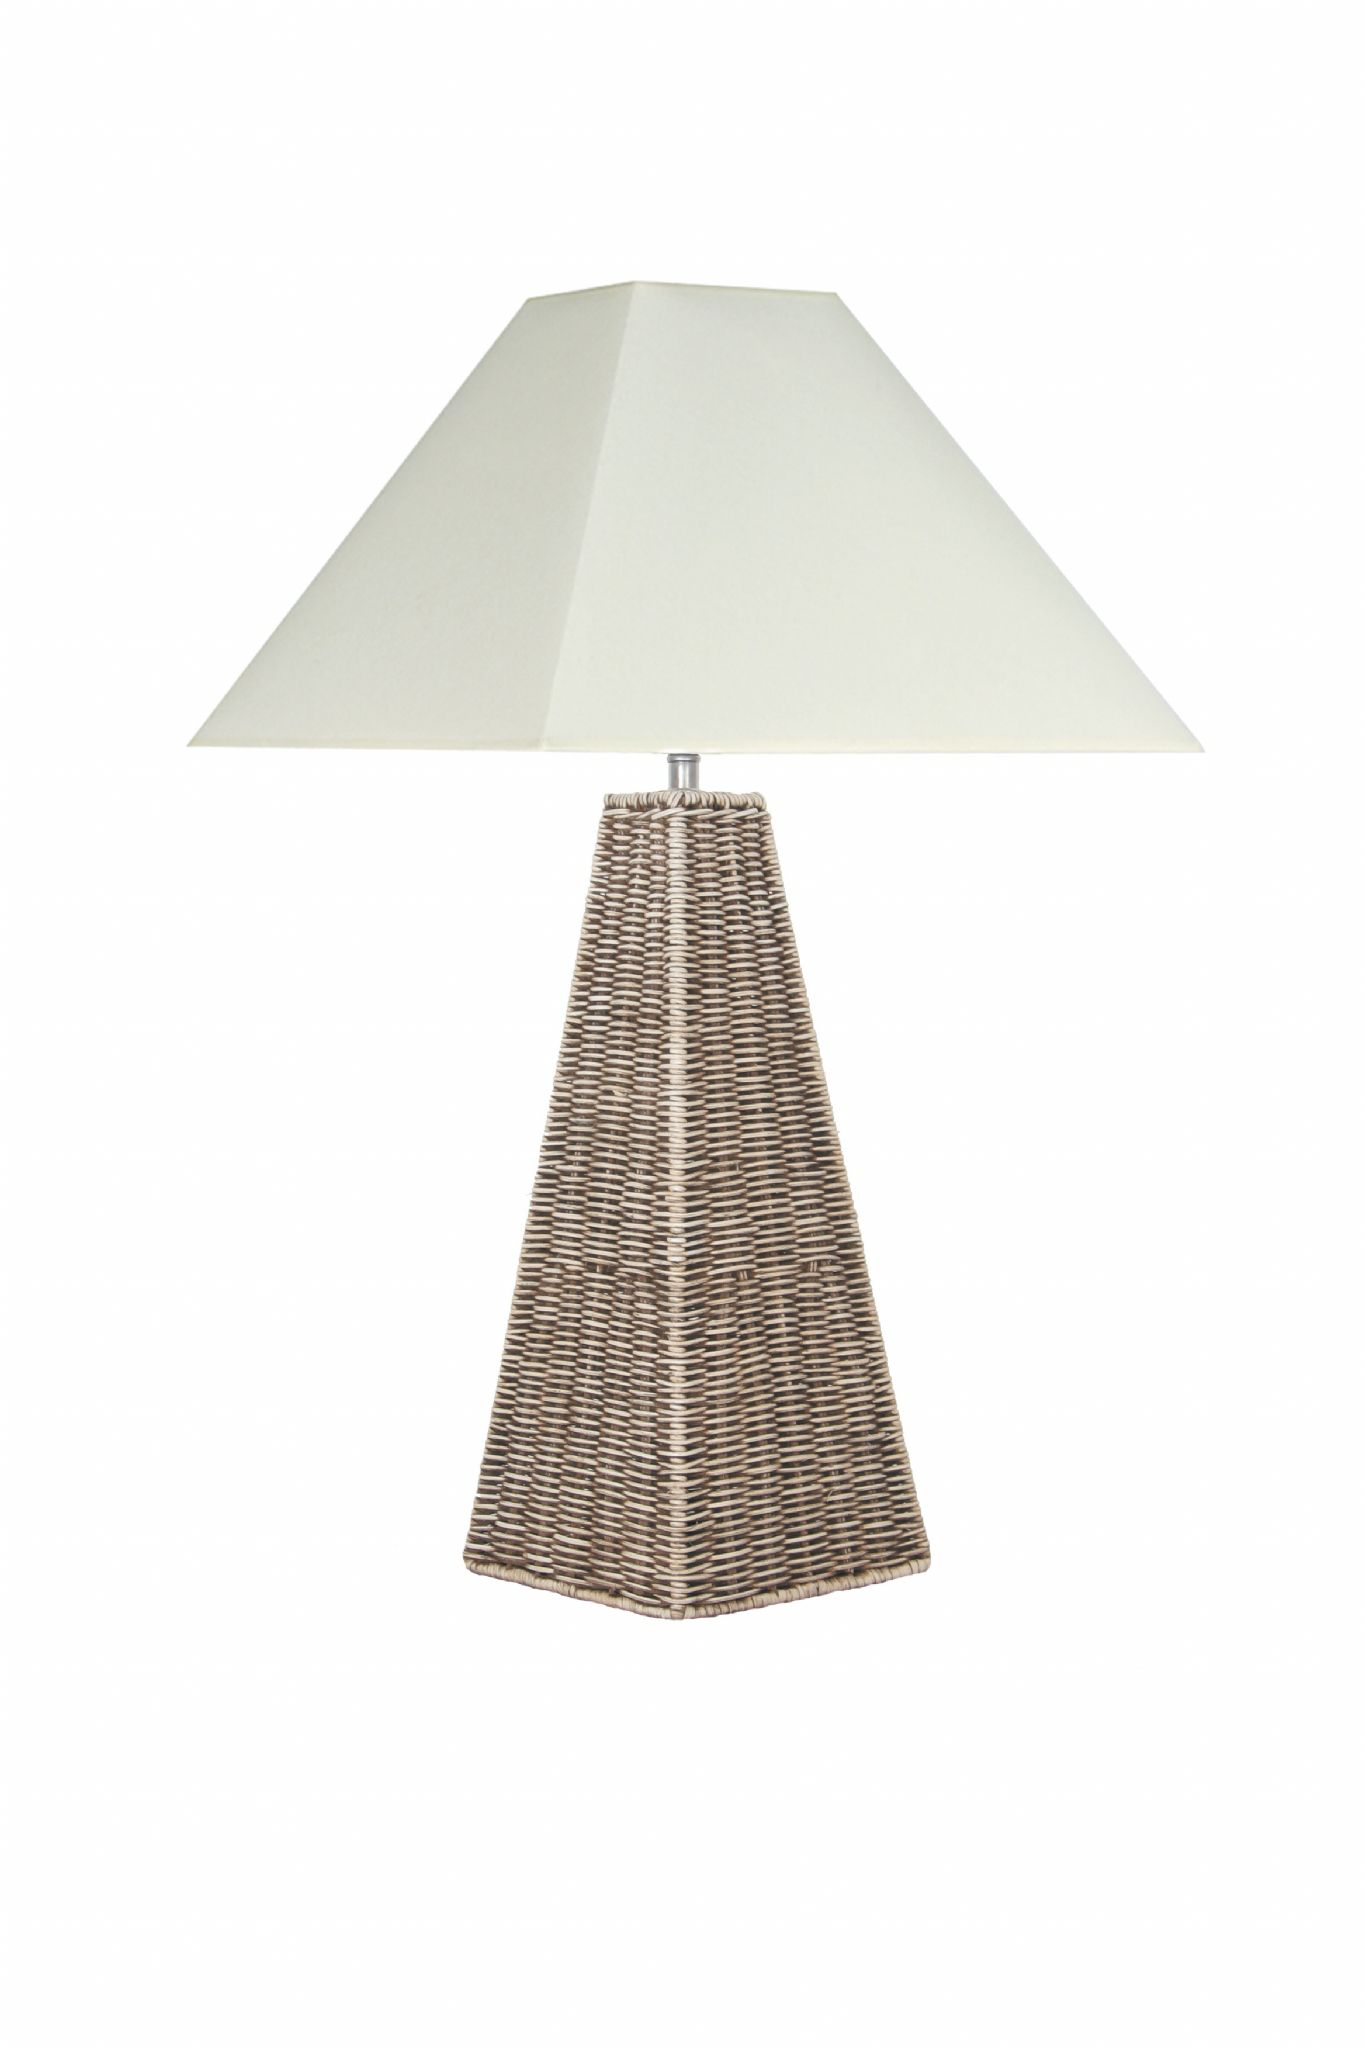 Rattan Pyramid Table Lamp Base Only